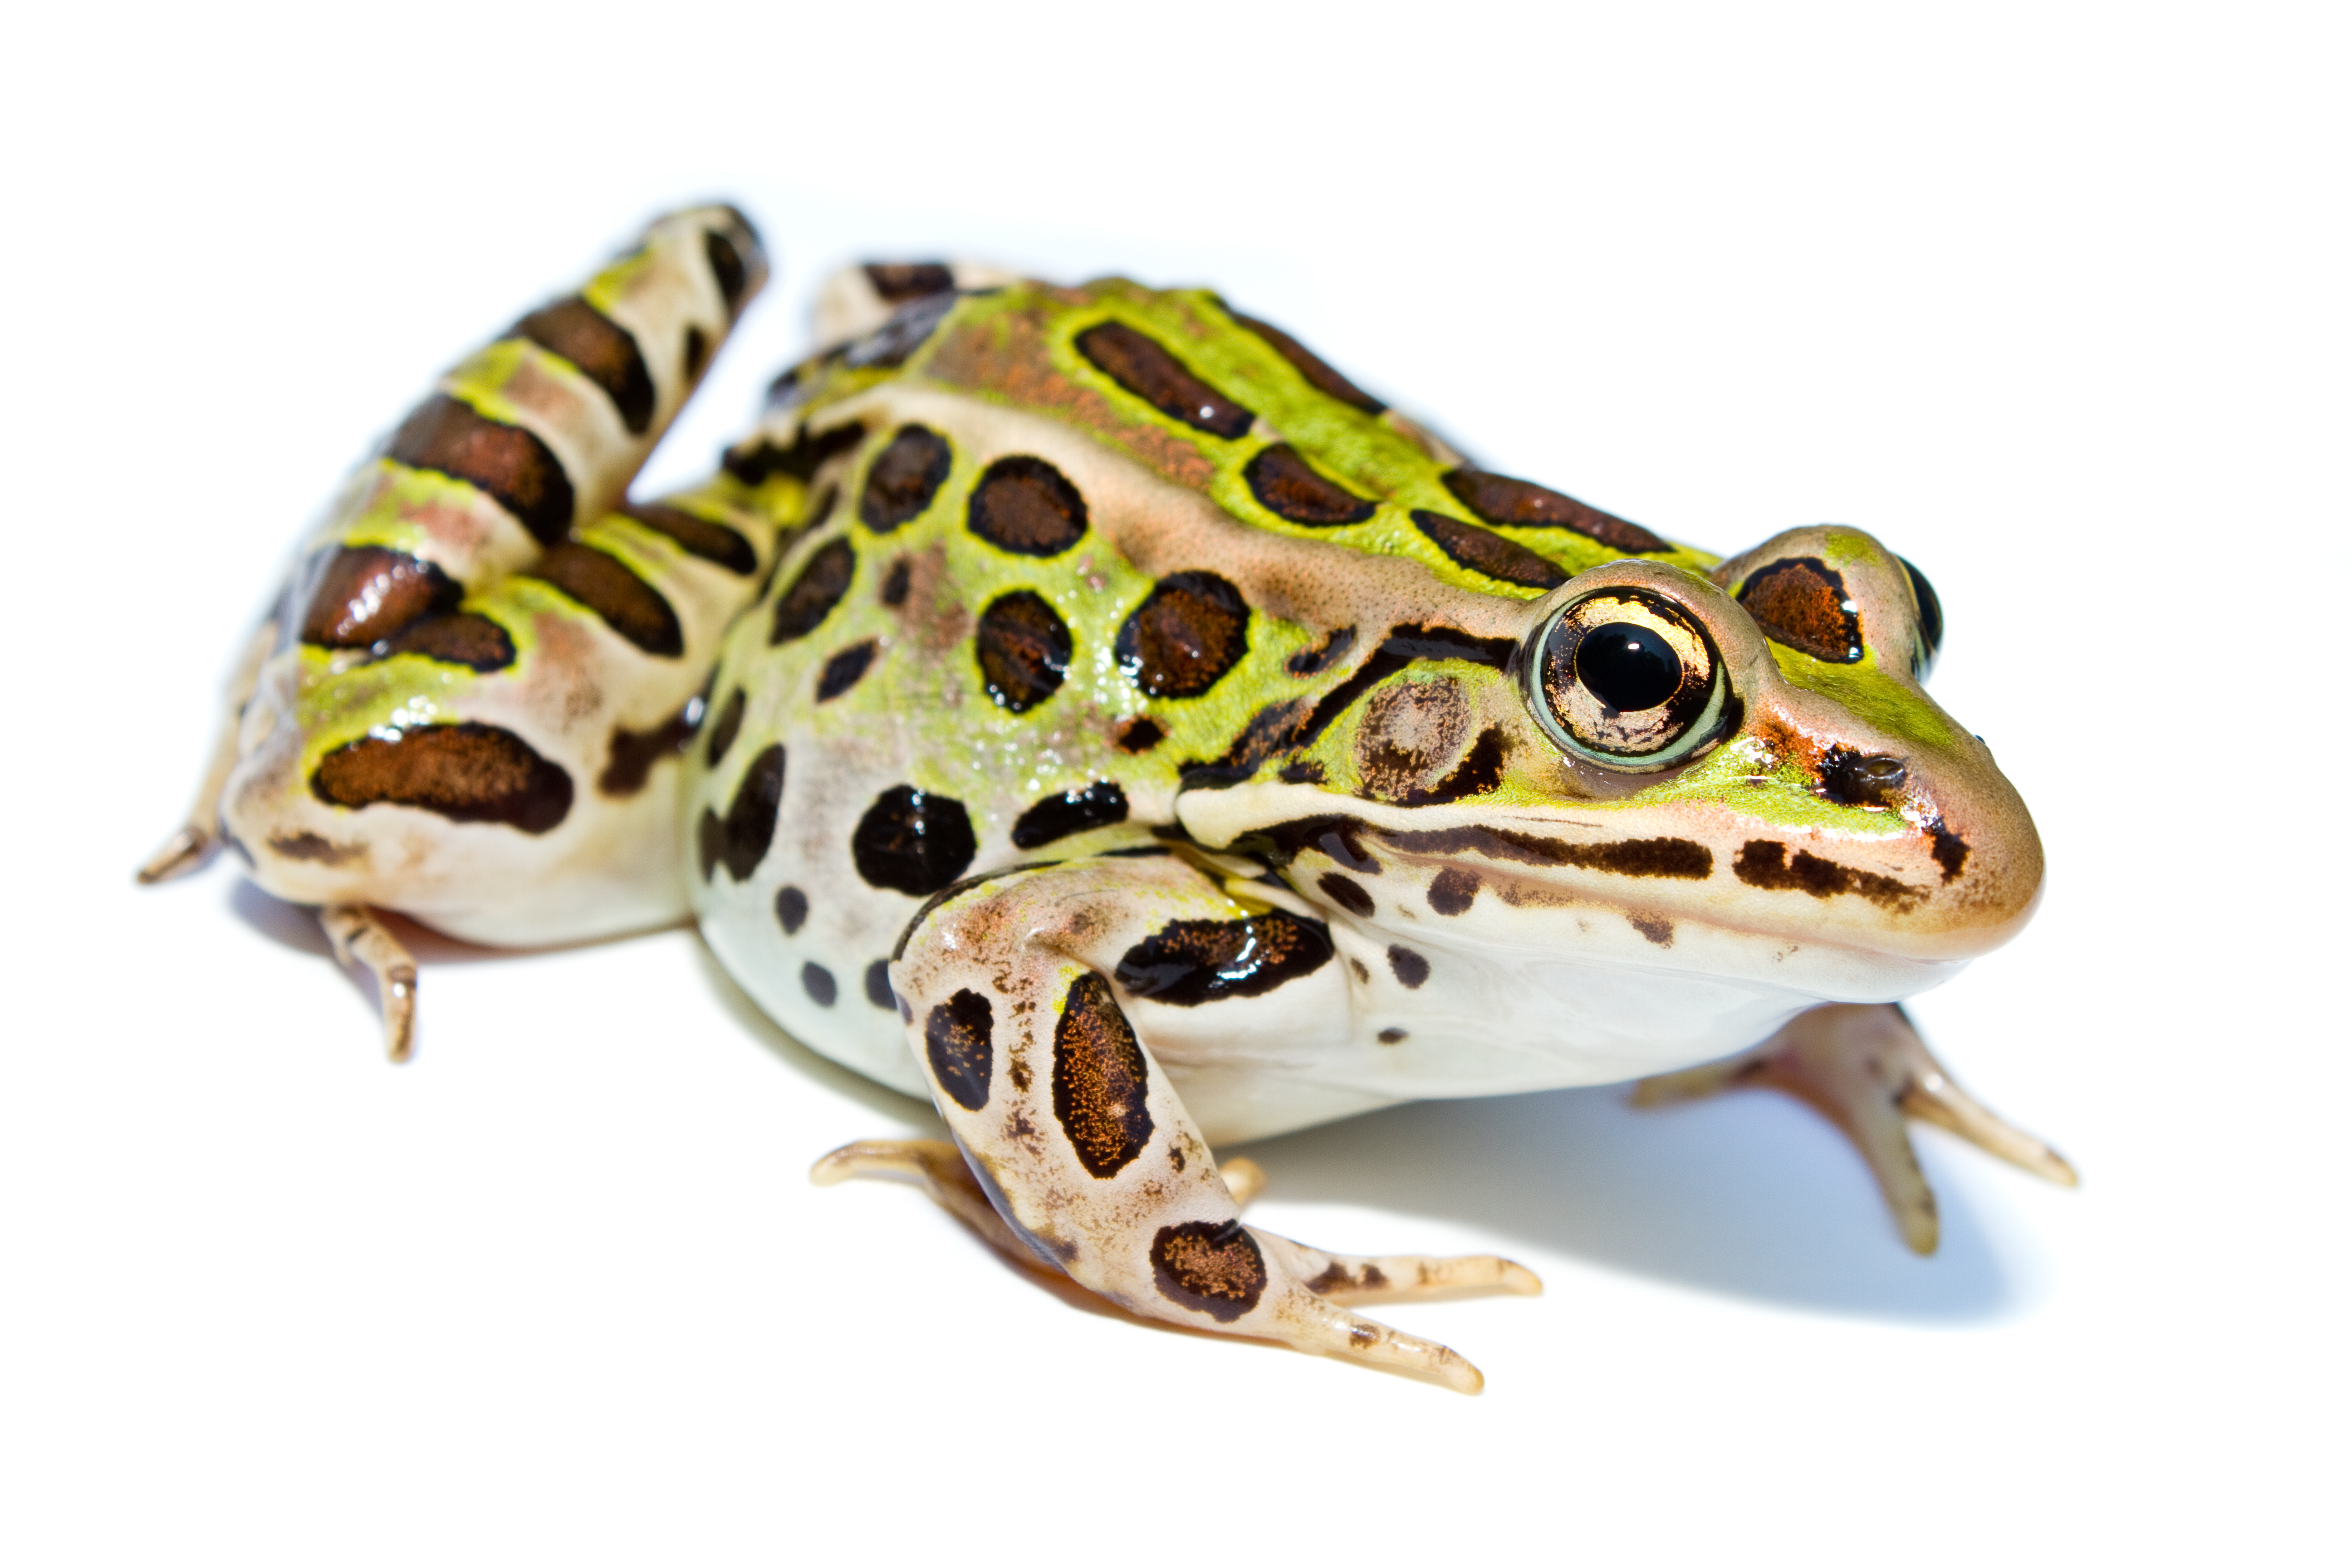 Northern leopard frog, a green frog with dark brown spots.